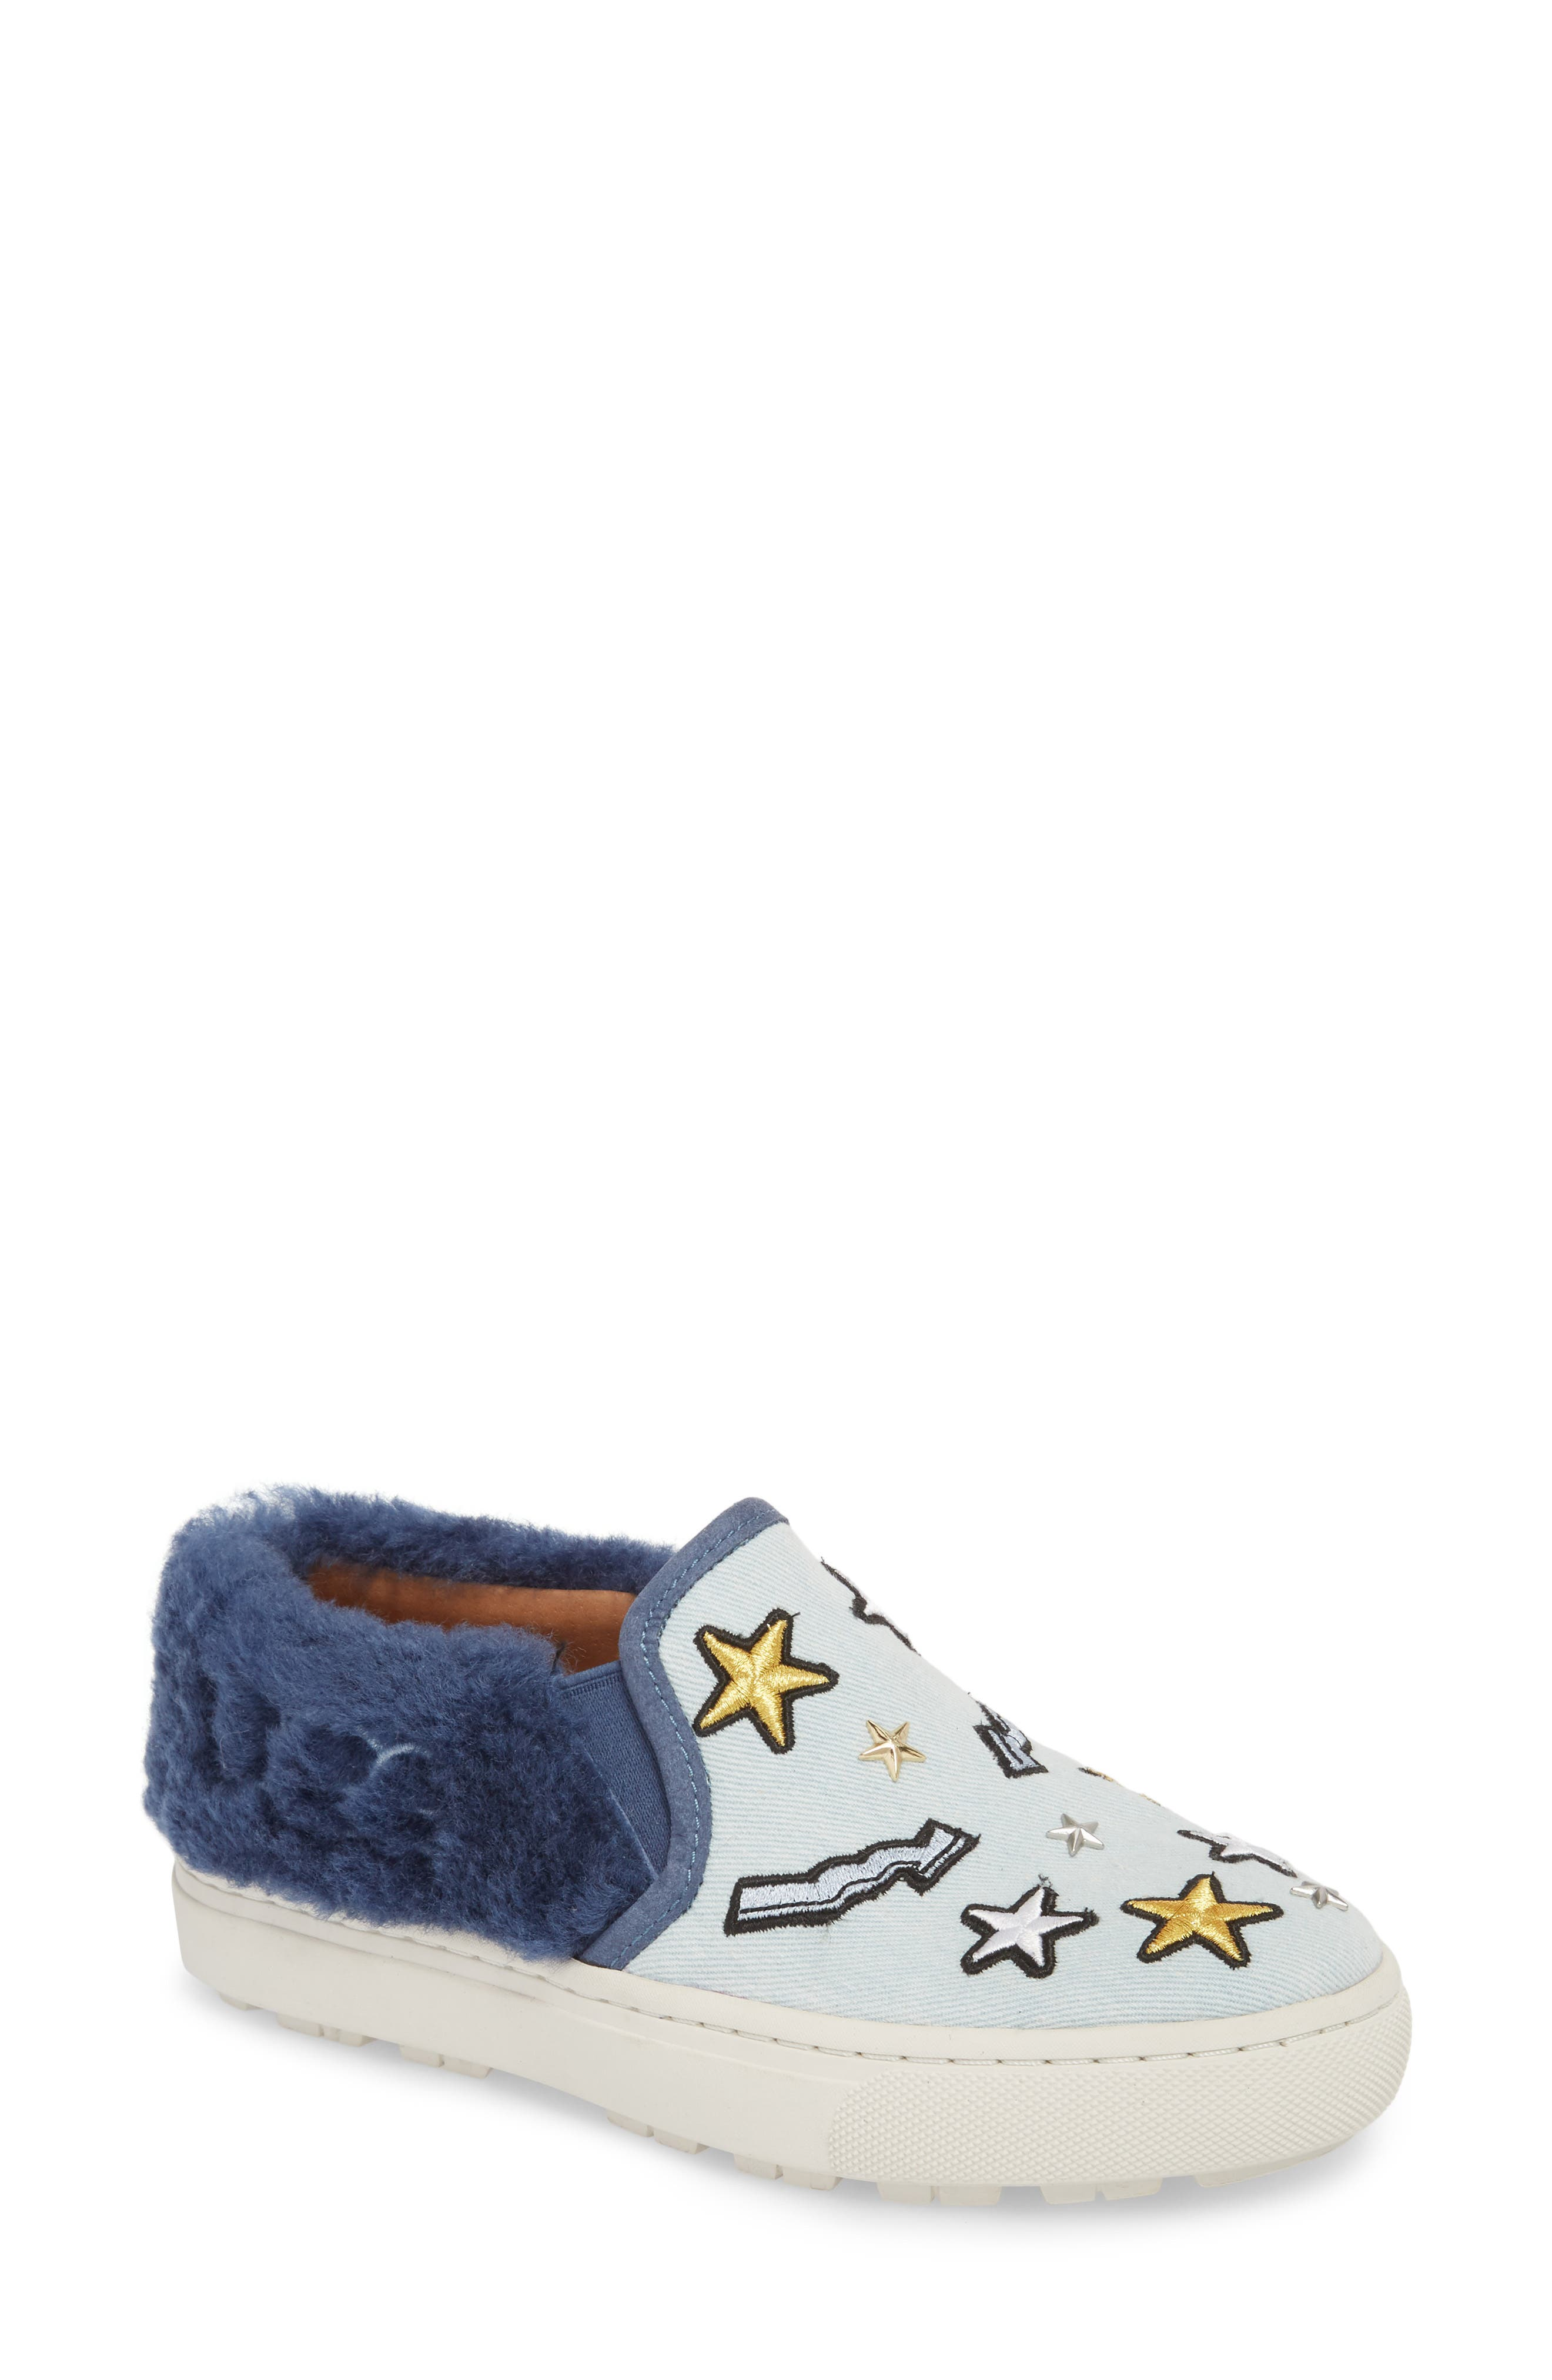 Patch It Genuine Shearling Trim Slip-On Sneaker,                             Main thumbnail 1, color,                             Bleach Denim